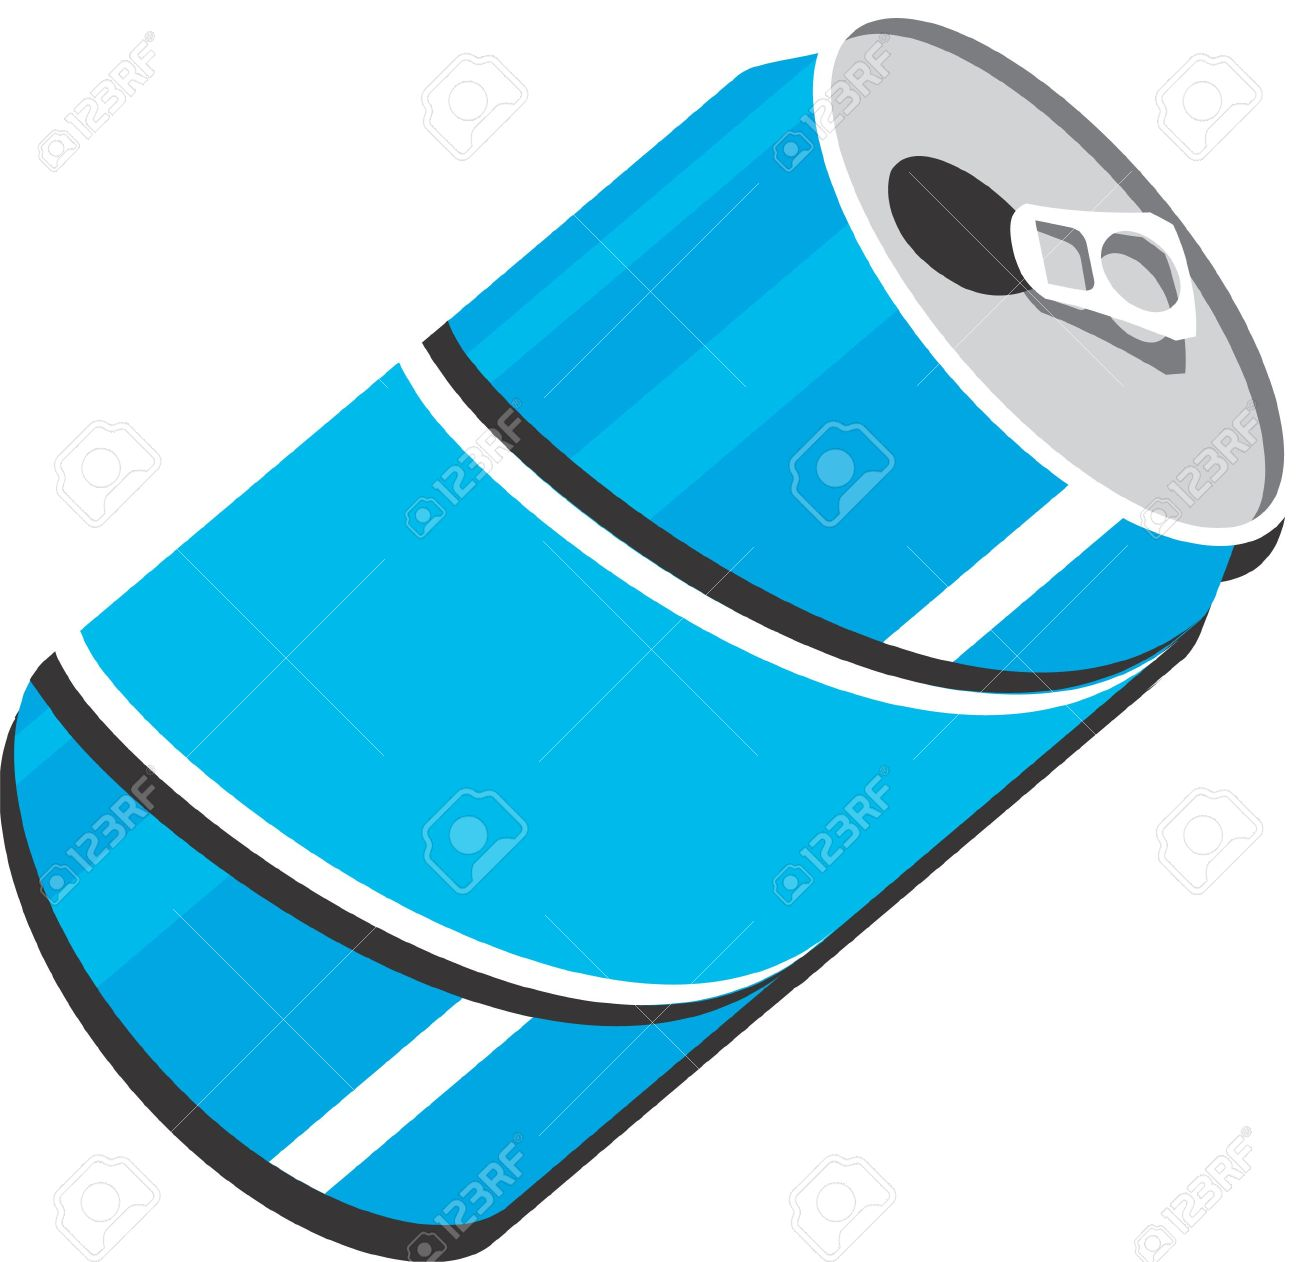 Free soda can clipart.